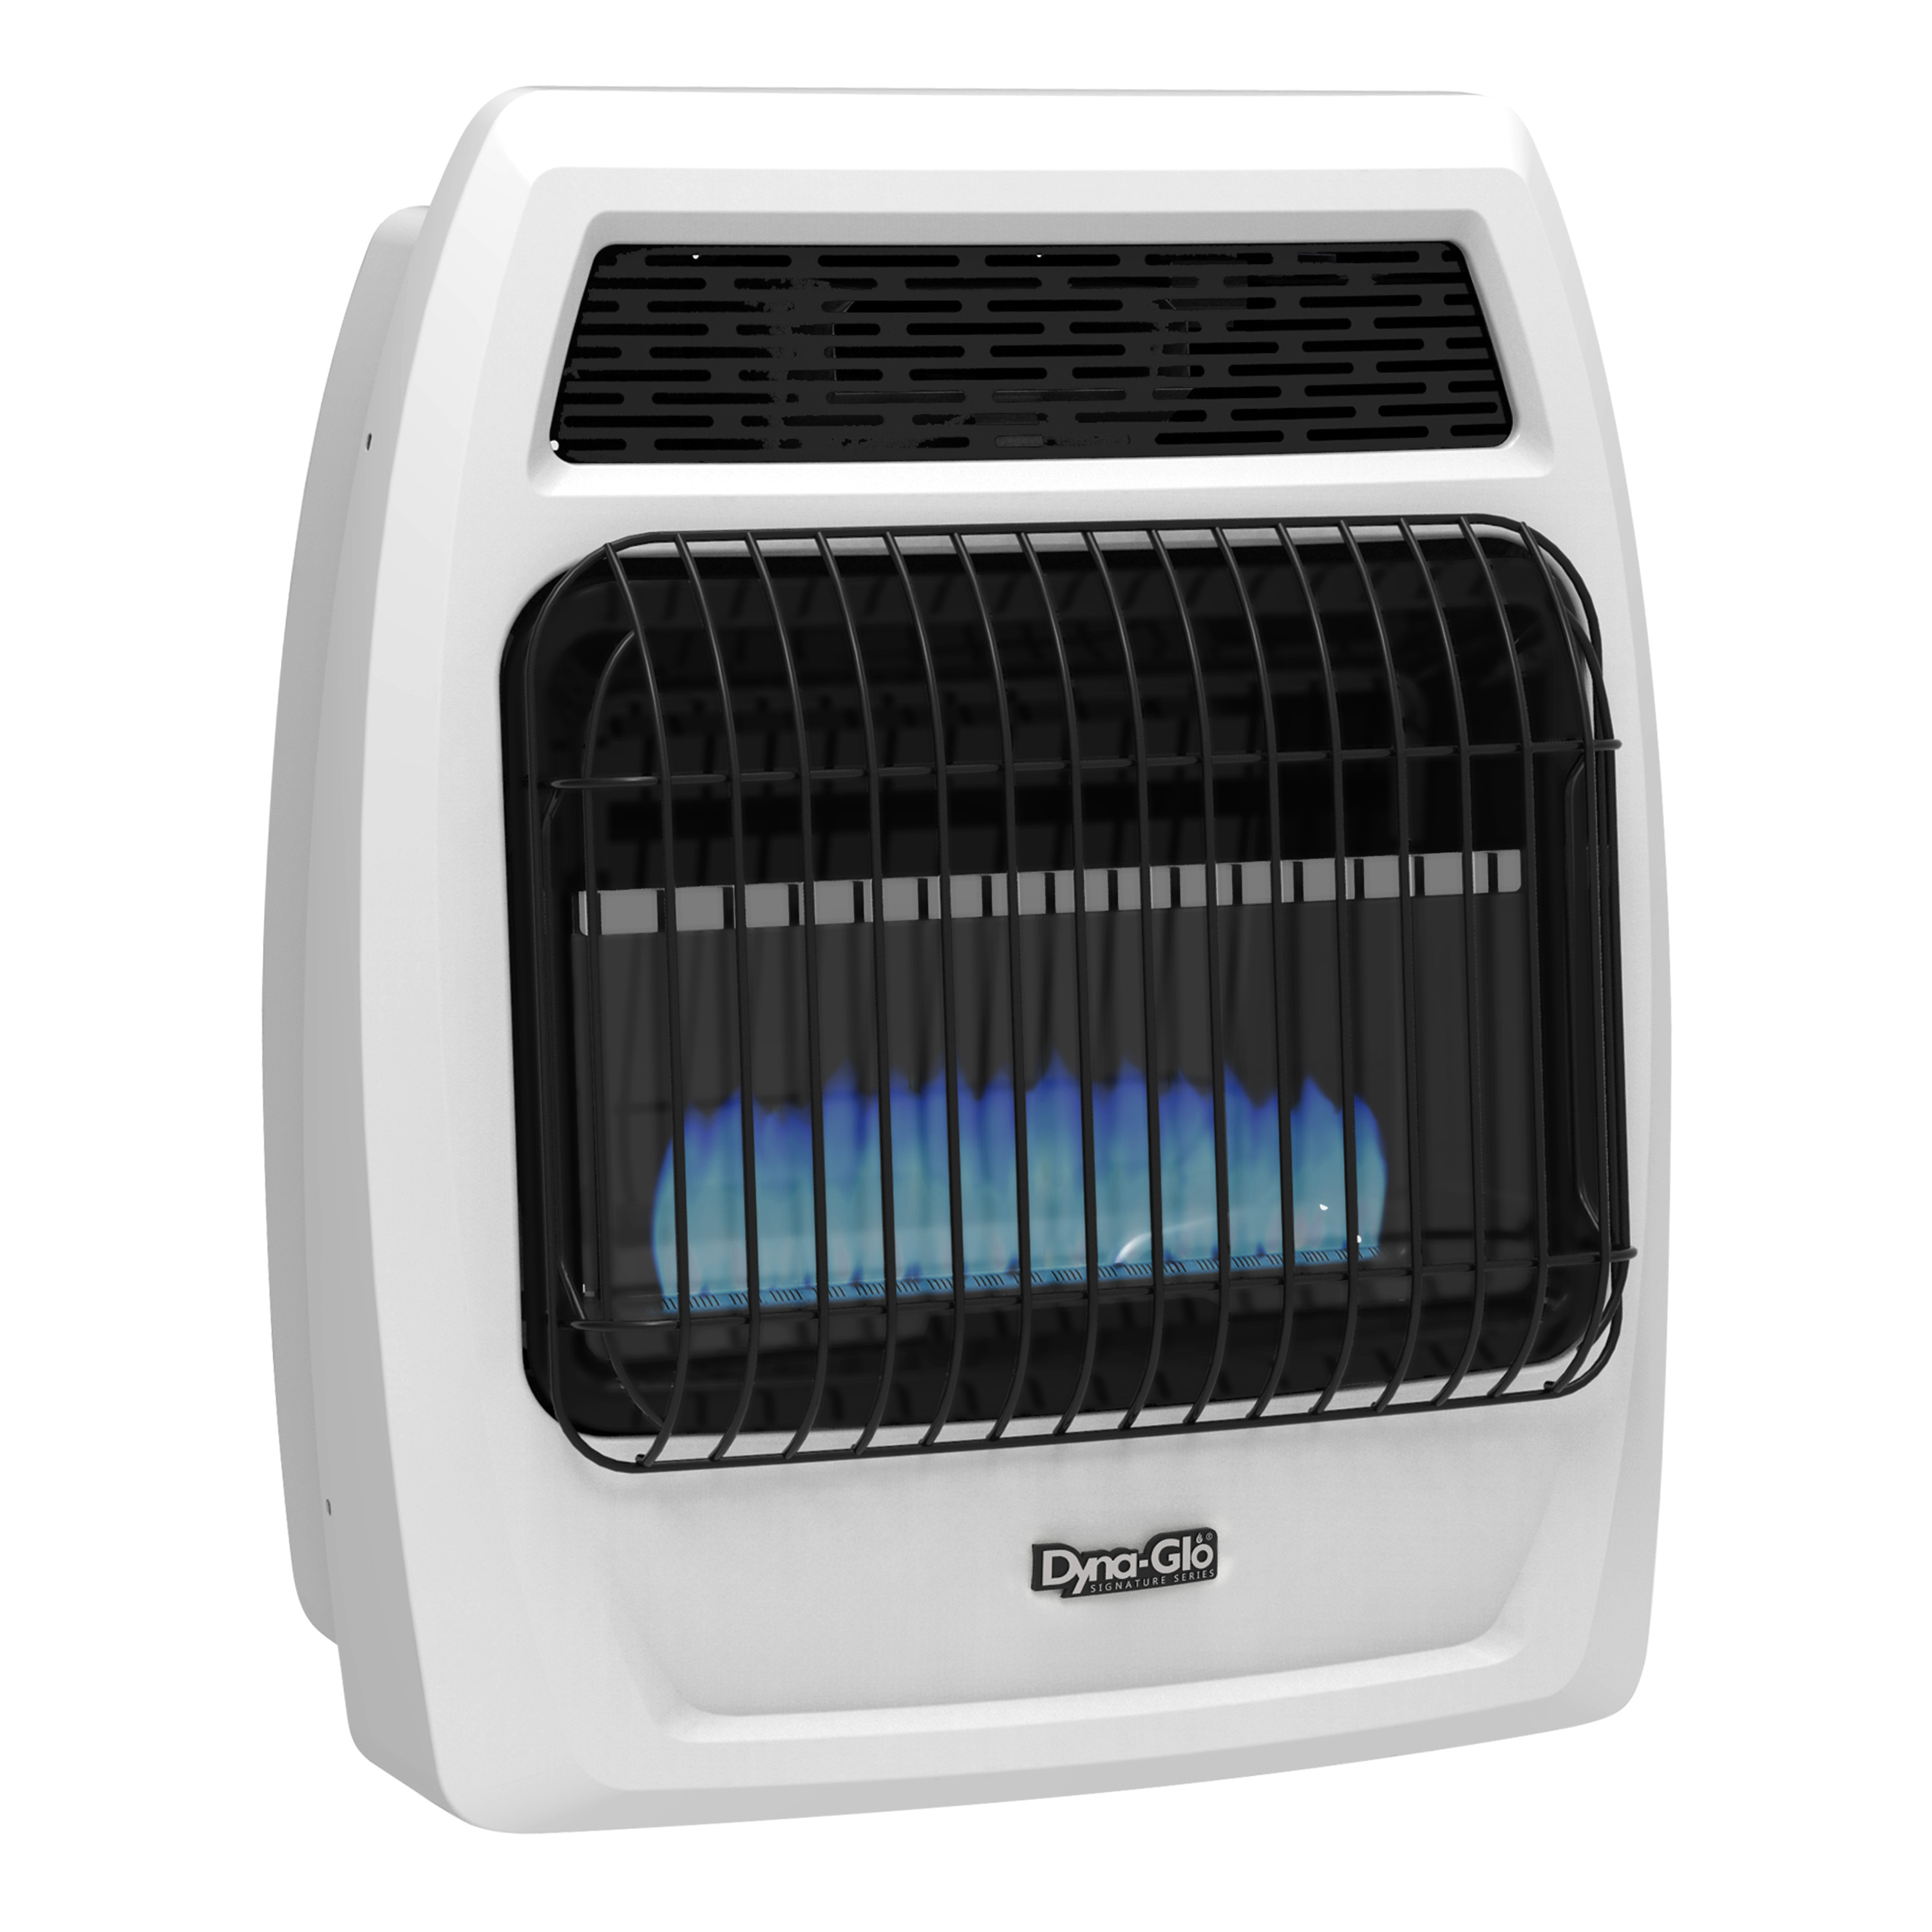 Dyna-Glo BFSS20NGT-2N 20,000 BTU Natural Gas Blue Flame Vent Free Thermostatic Wall Heater